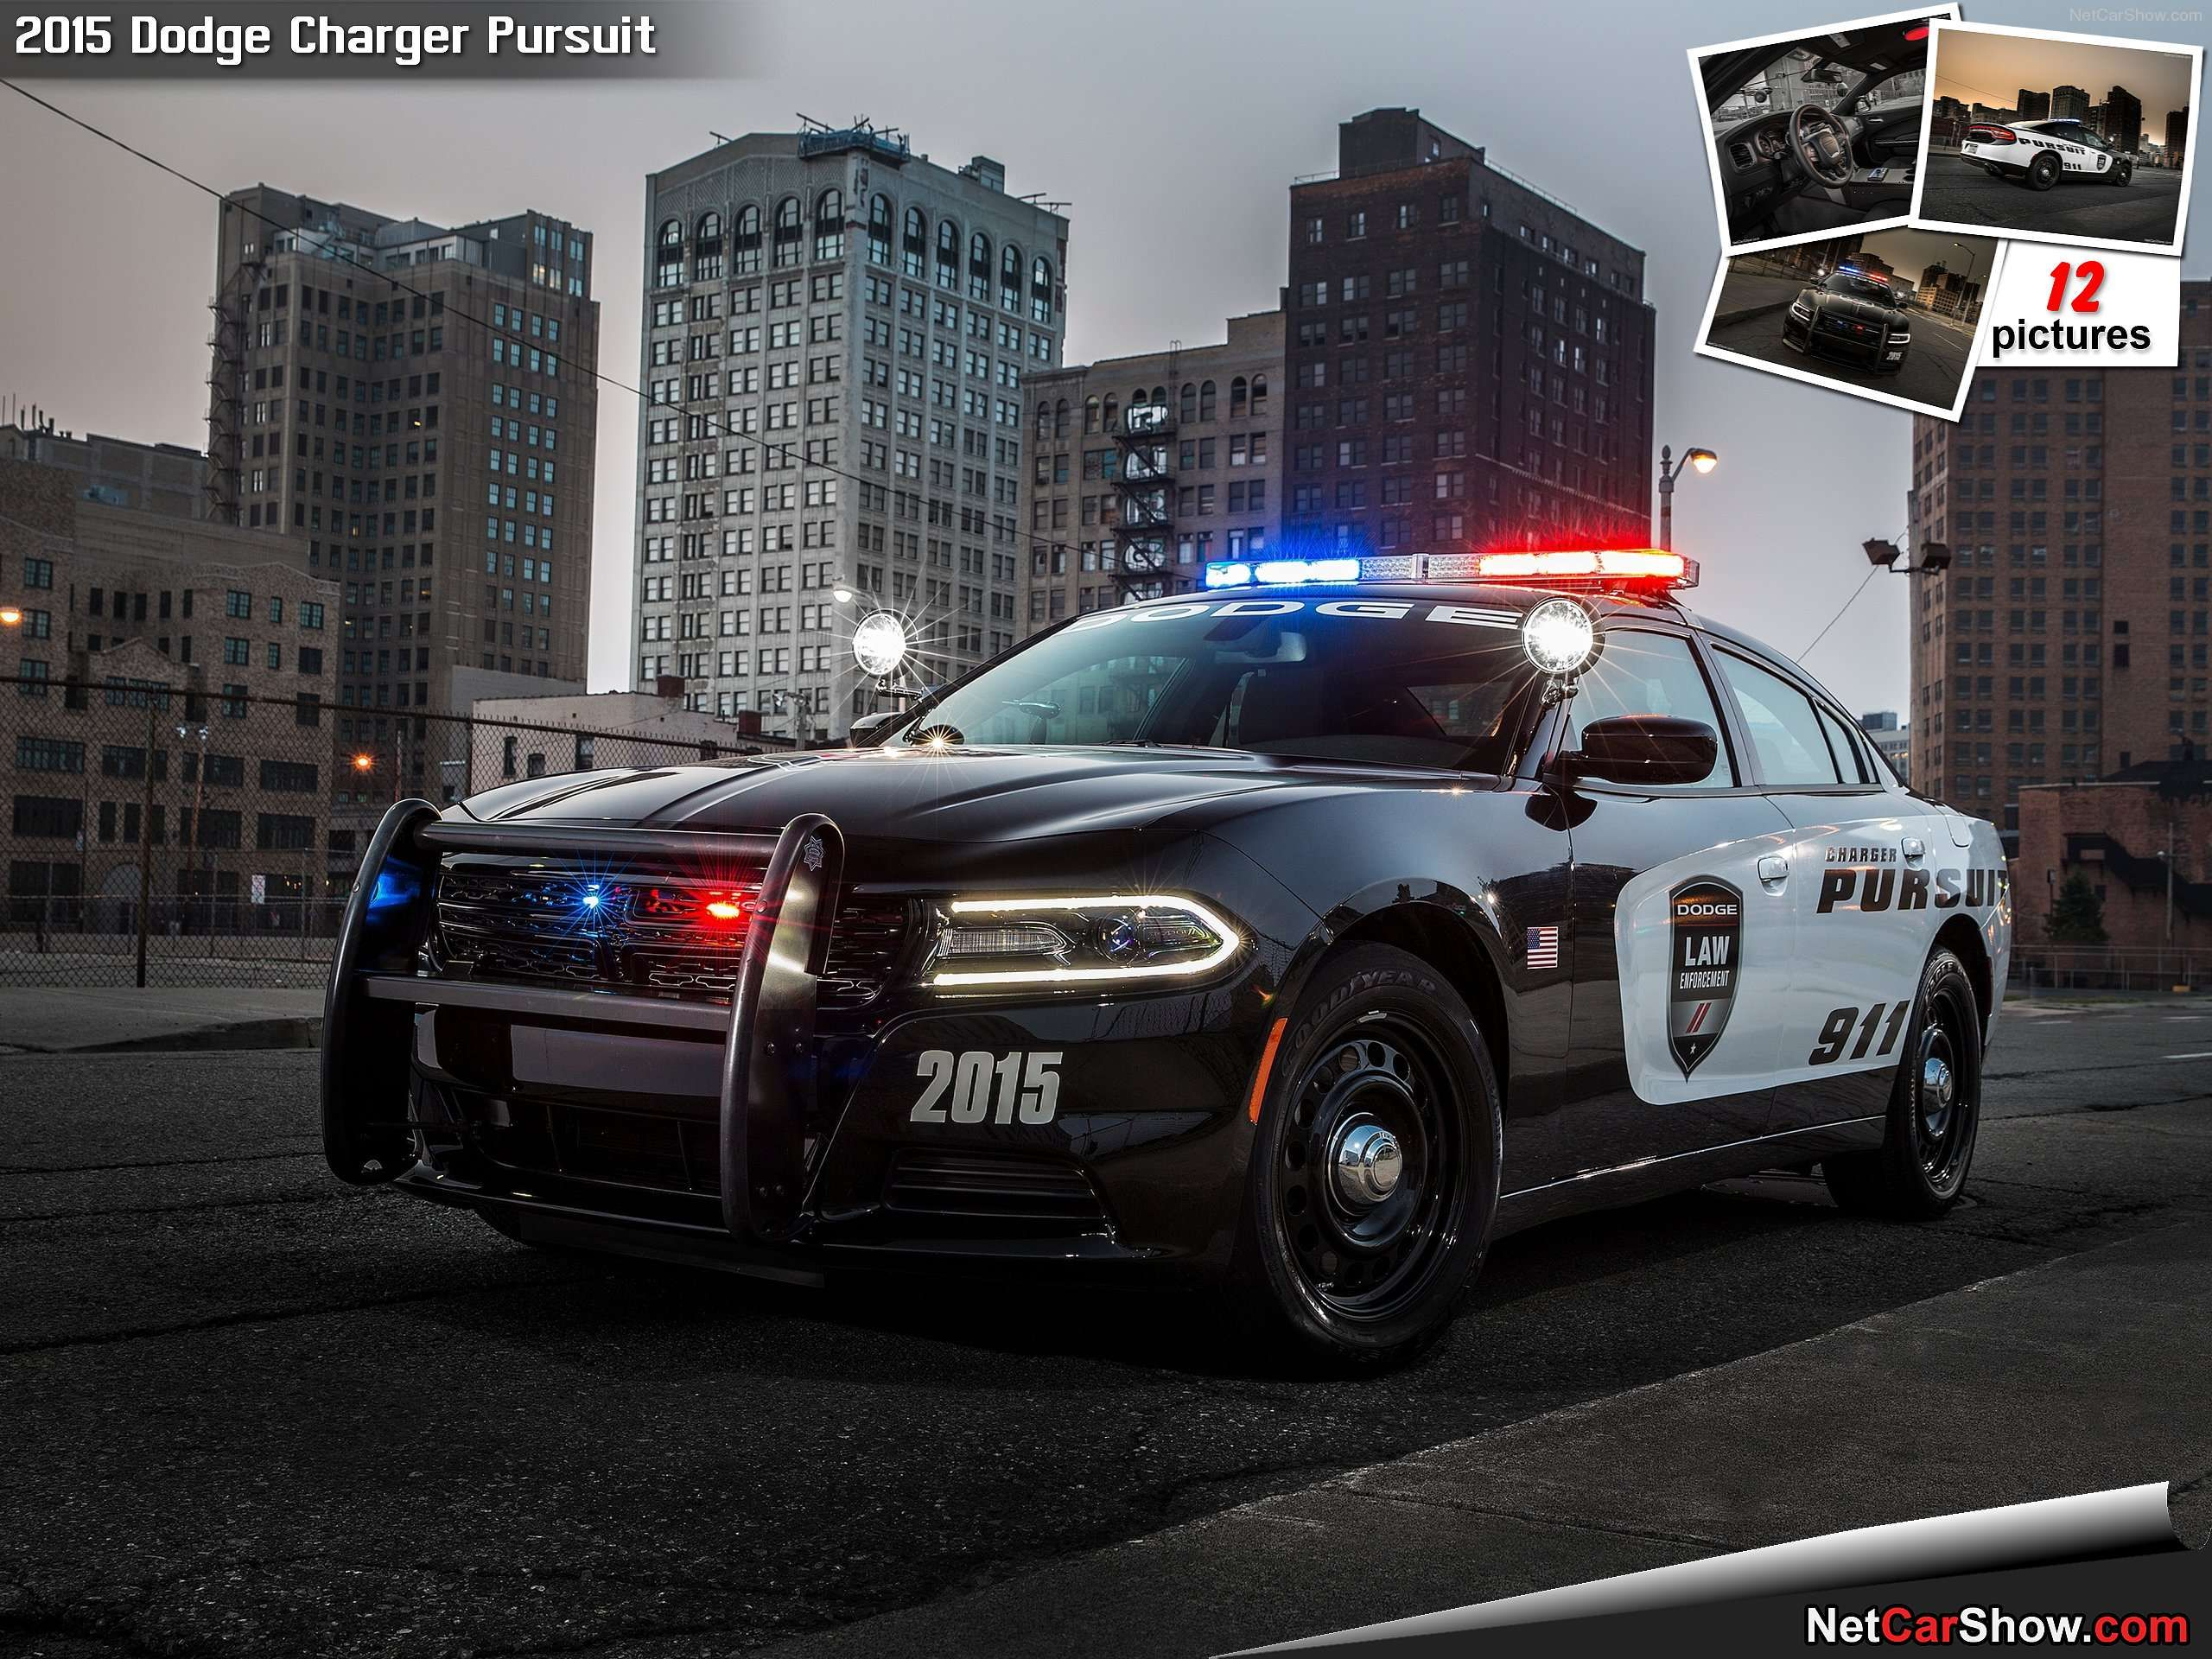 Dodge-Charger_Pursuit-2015-hd.jpg (2560×1920)